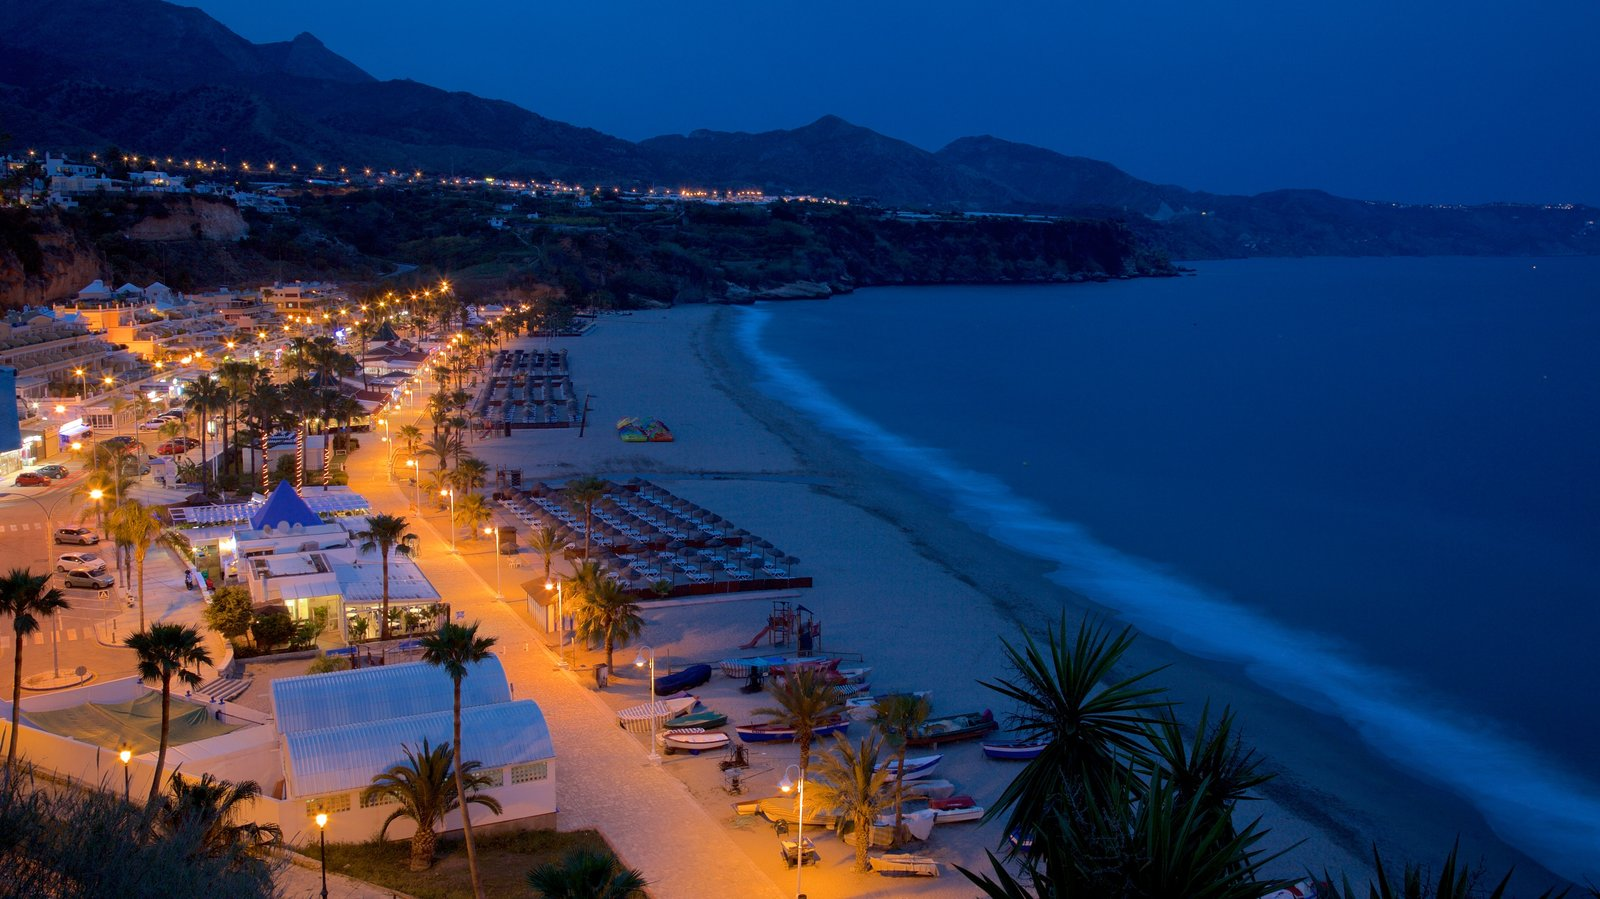 Burriana Beach featuring night scenes, a bay or harbor and a coastal town